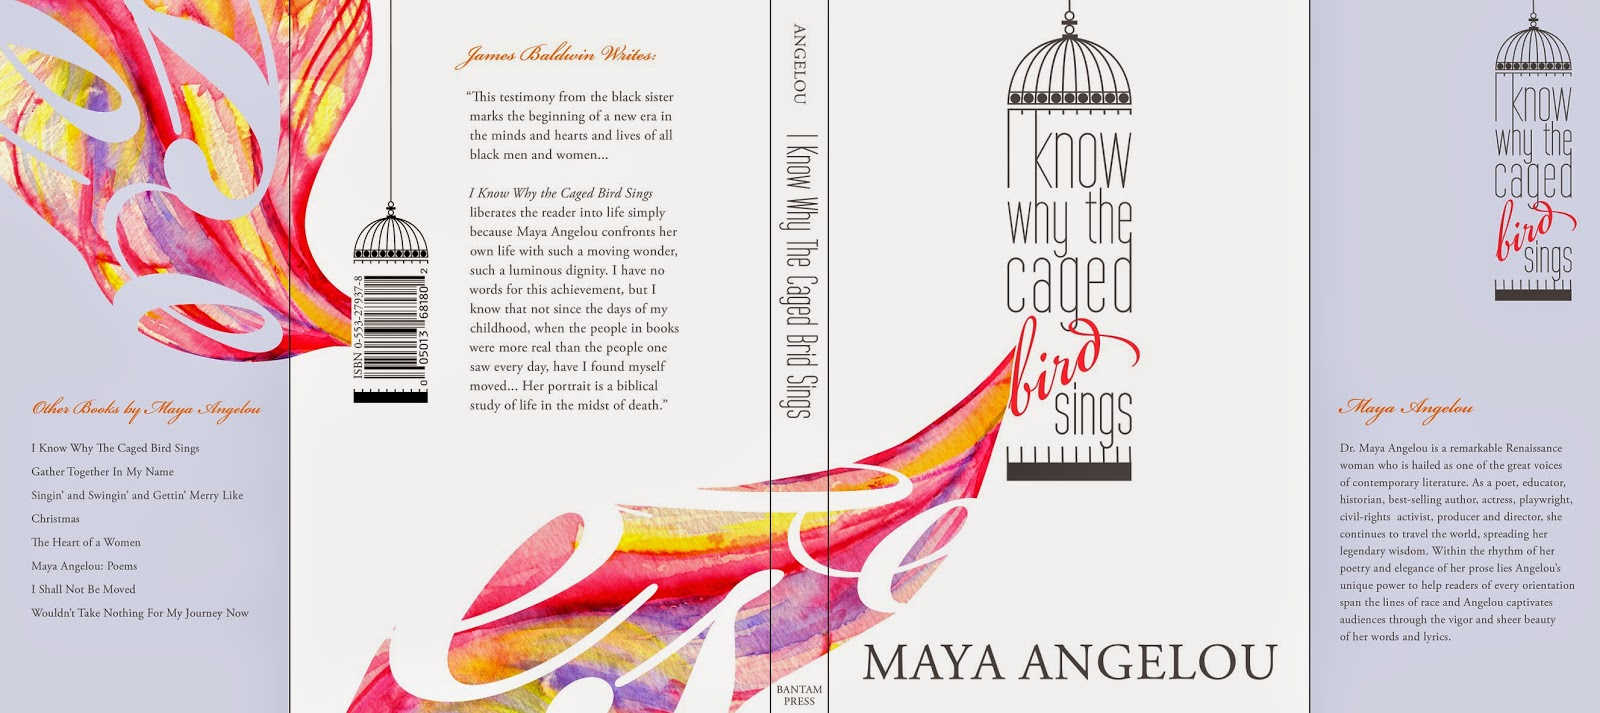 the metaphors and imagery of freedom in i know why the caged bird sings a book by maya angelou Get answers to your i know why the caged bird sings questions from professional tutors at bookragscom.